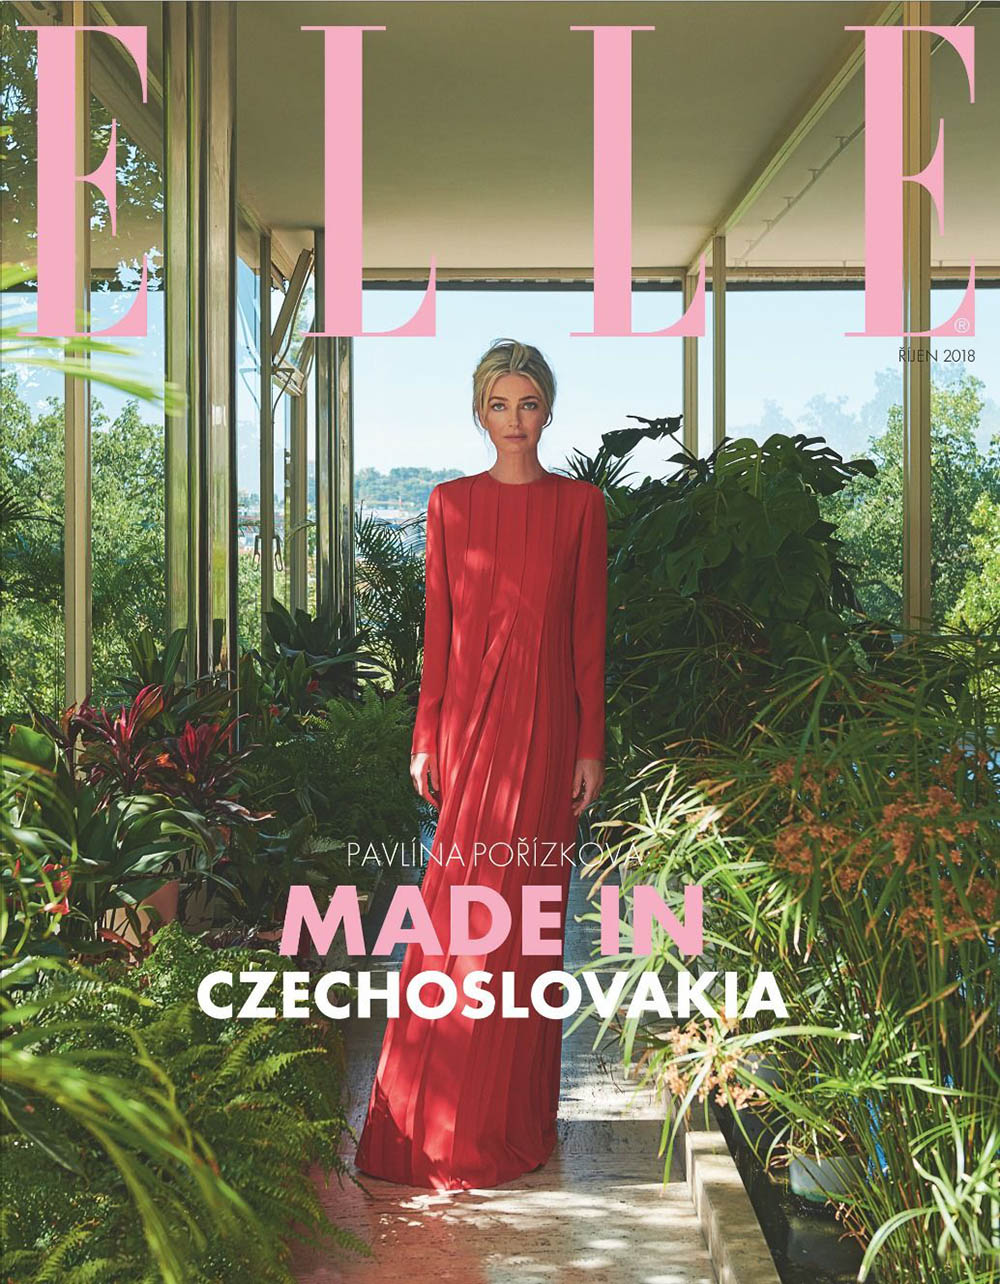 Paulina Porizkova covers Elle Czech October 2018 by Andreas Ortner